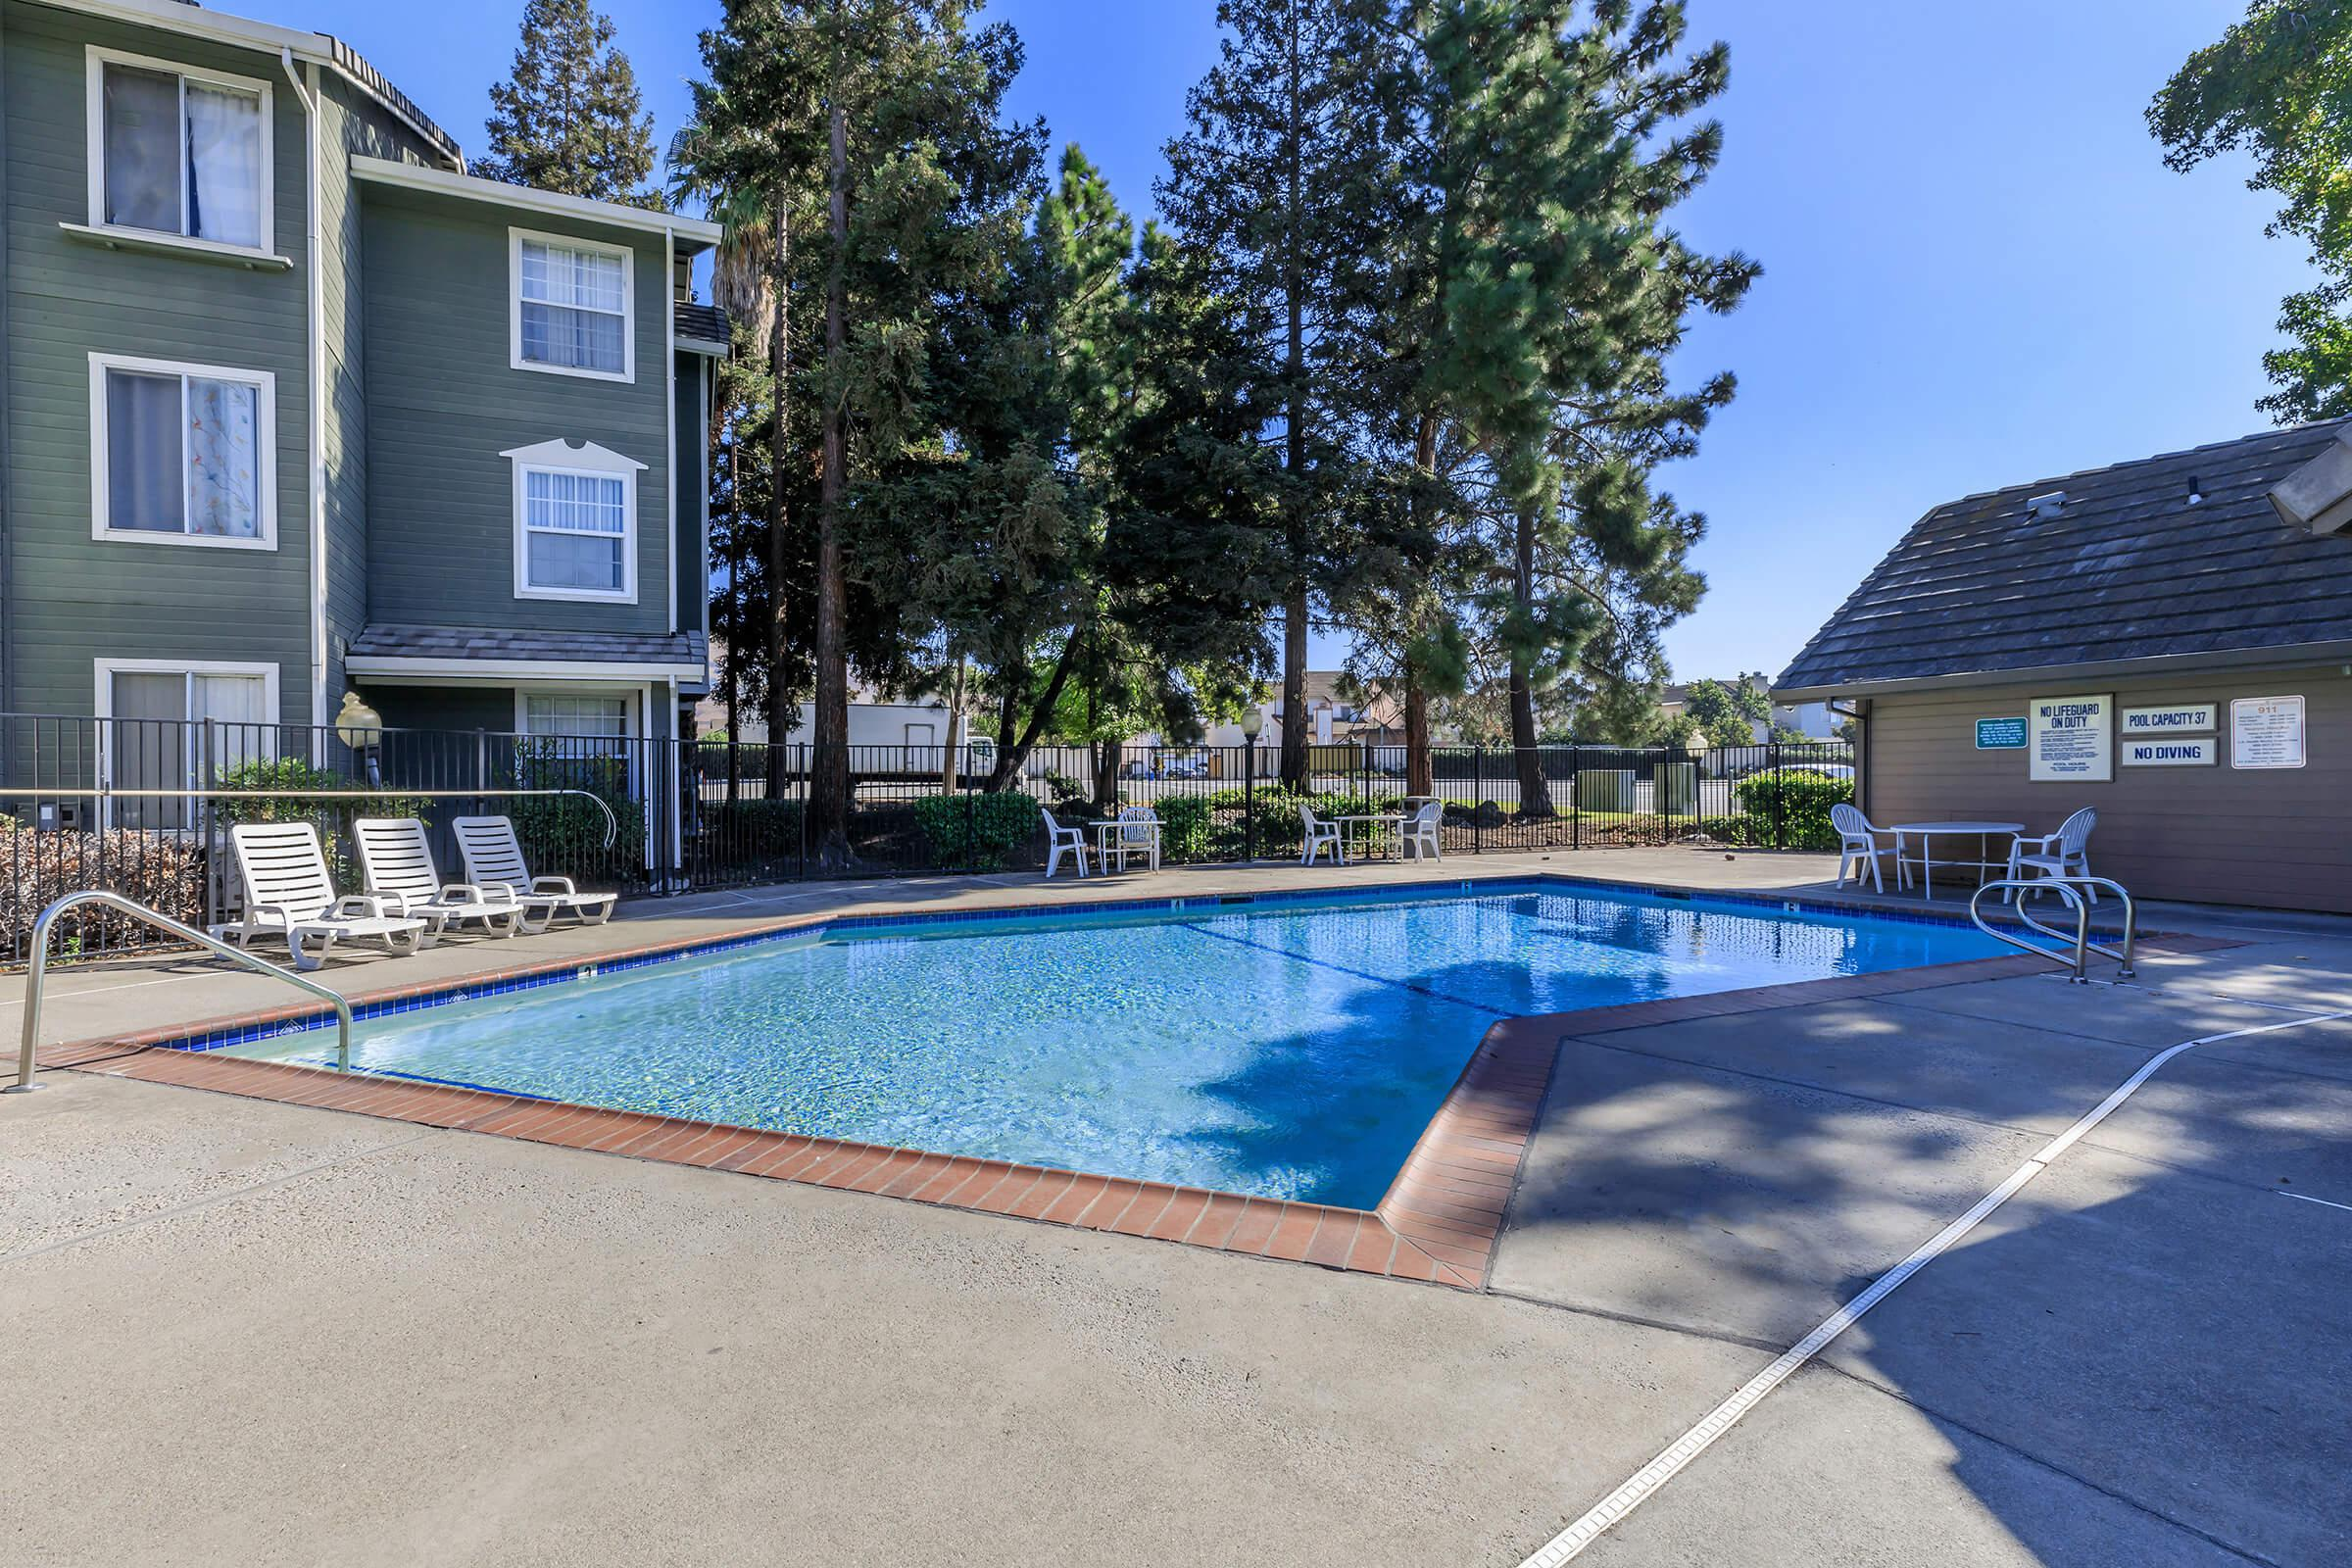 Pool at Victorian Square in Milpitas CA